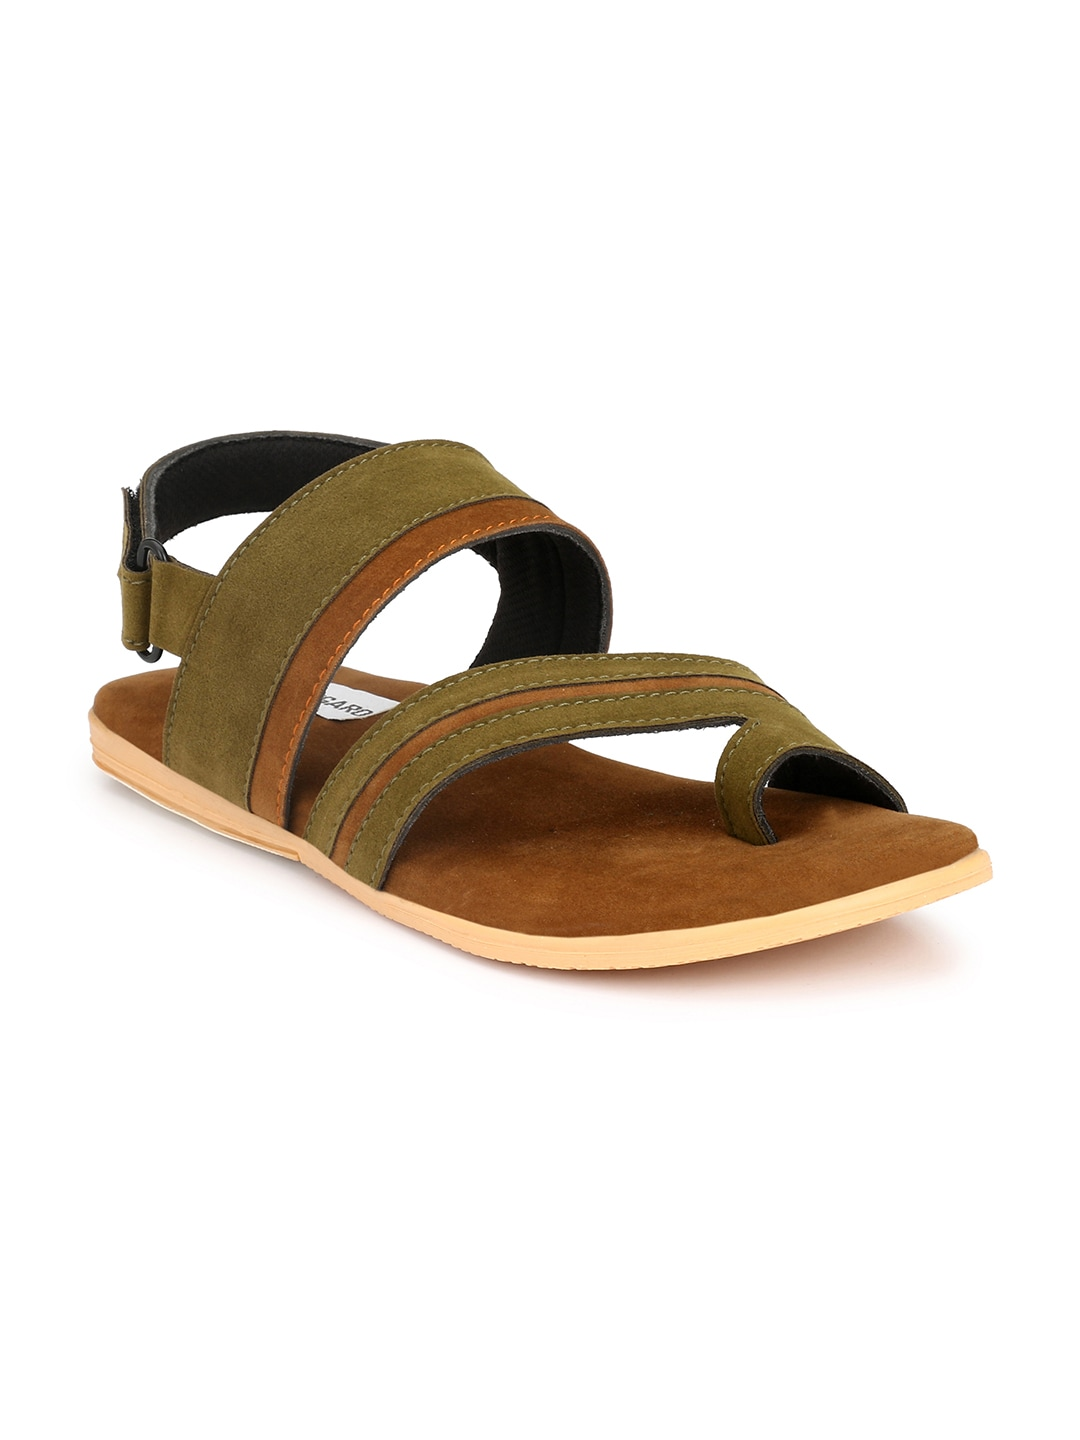 bf230601f337 Sandals - Buy Sandals Online for Men   Women in India